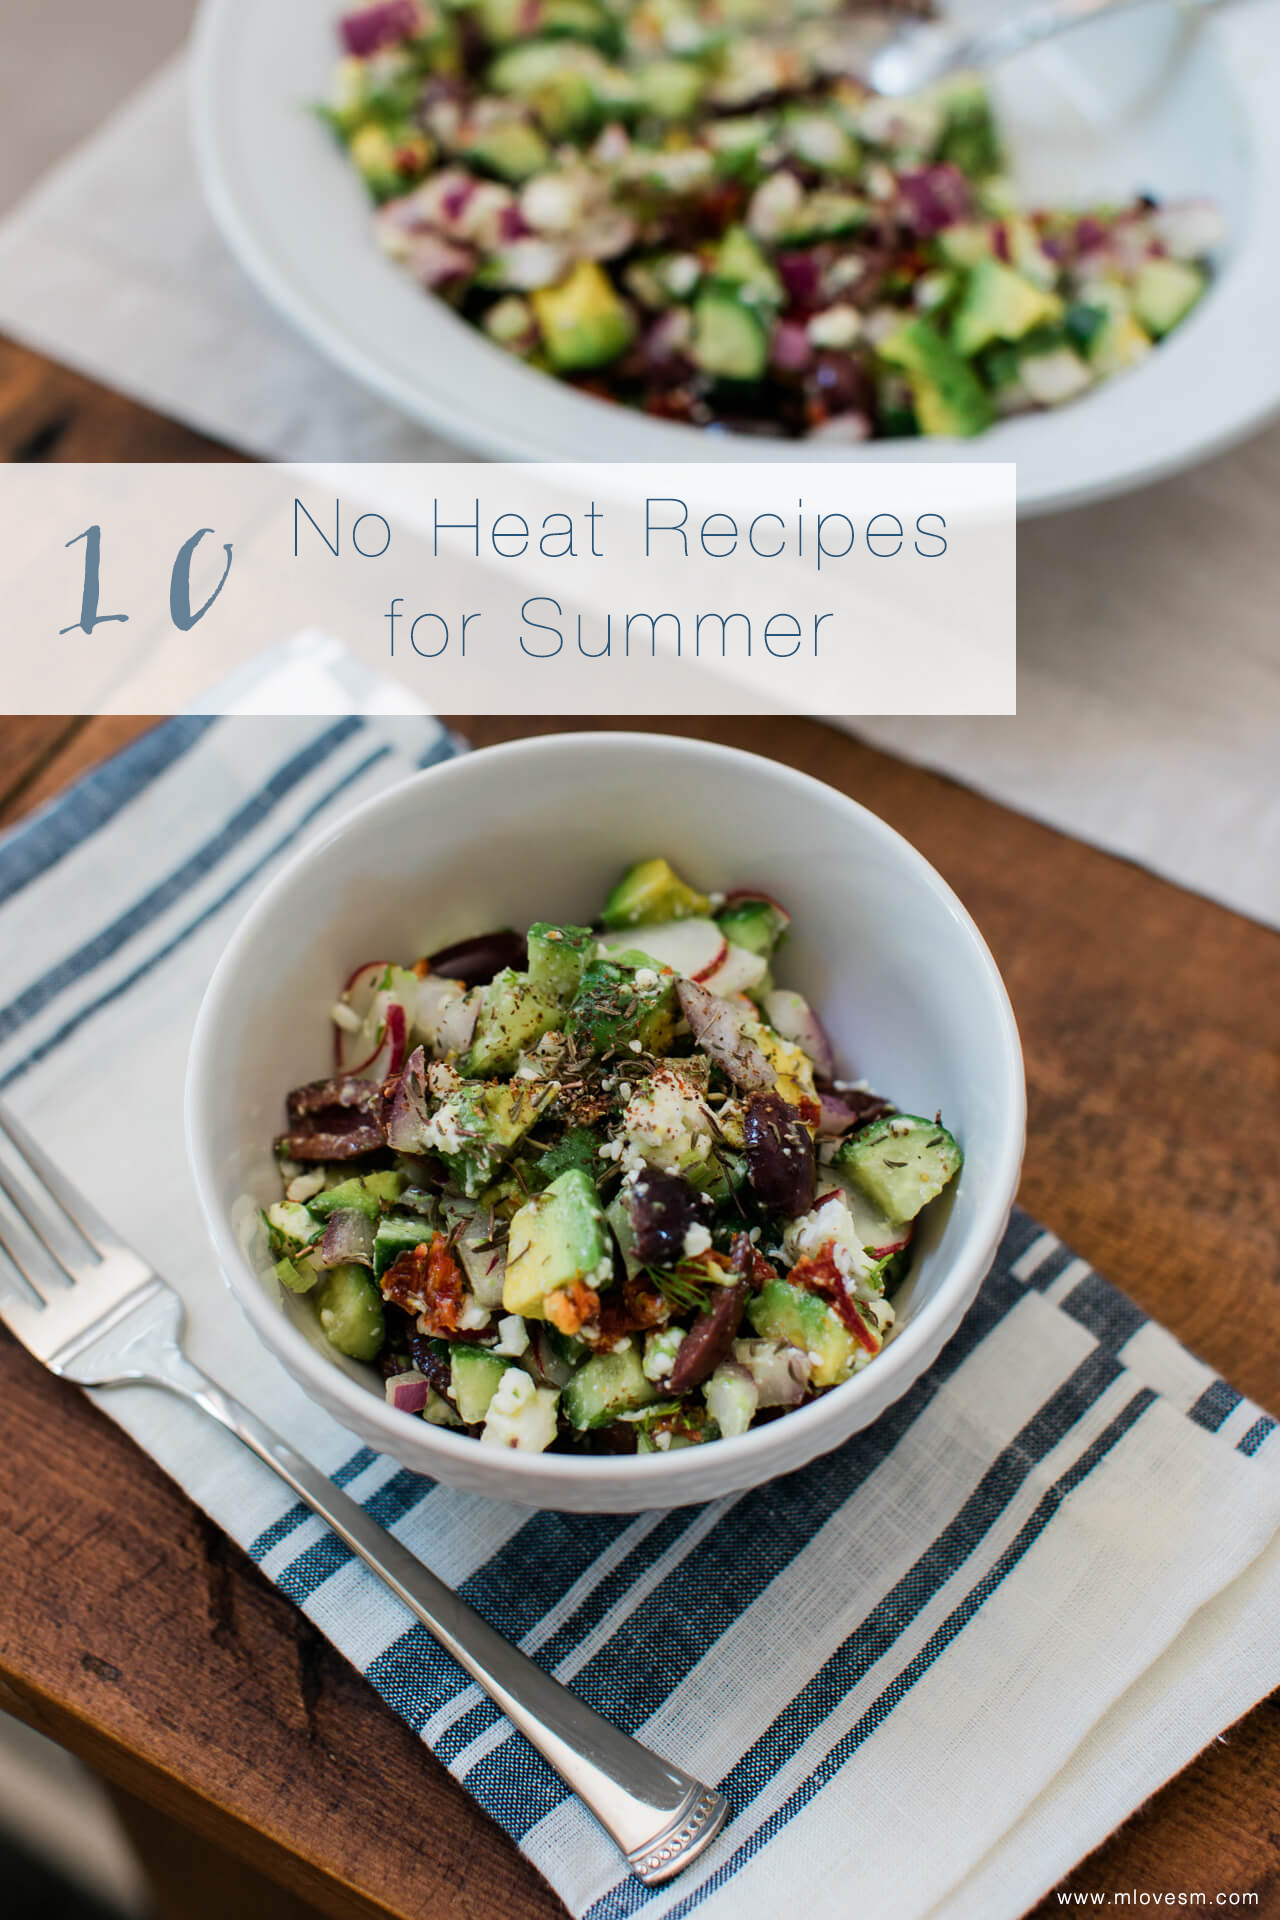 10 no heat summer recipes ideas including an avocado greek salad - M Loves M @marmar